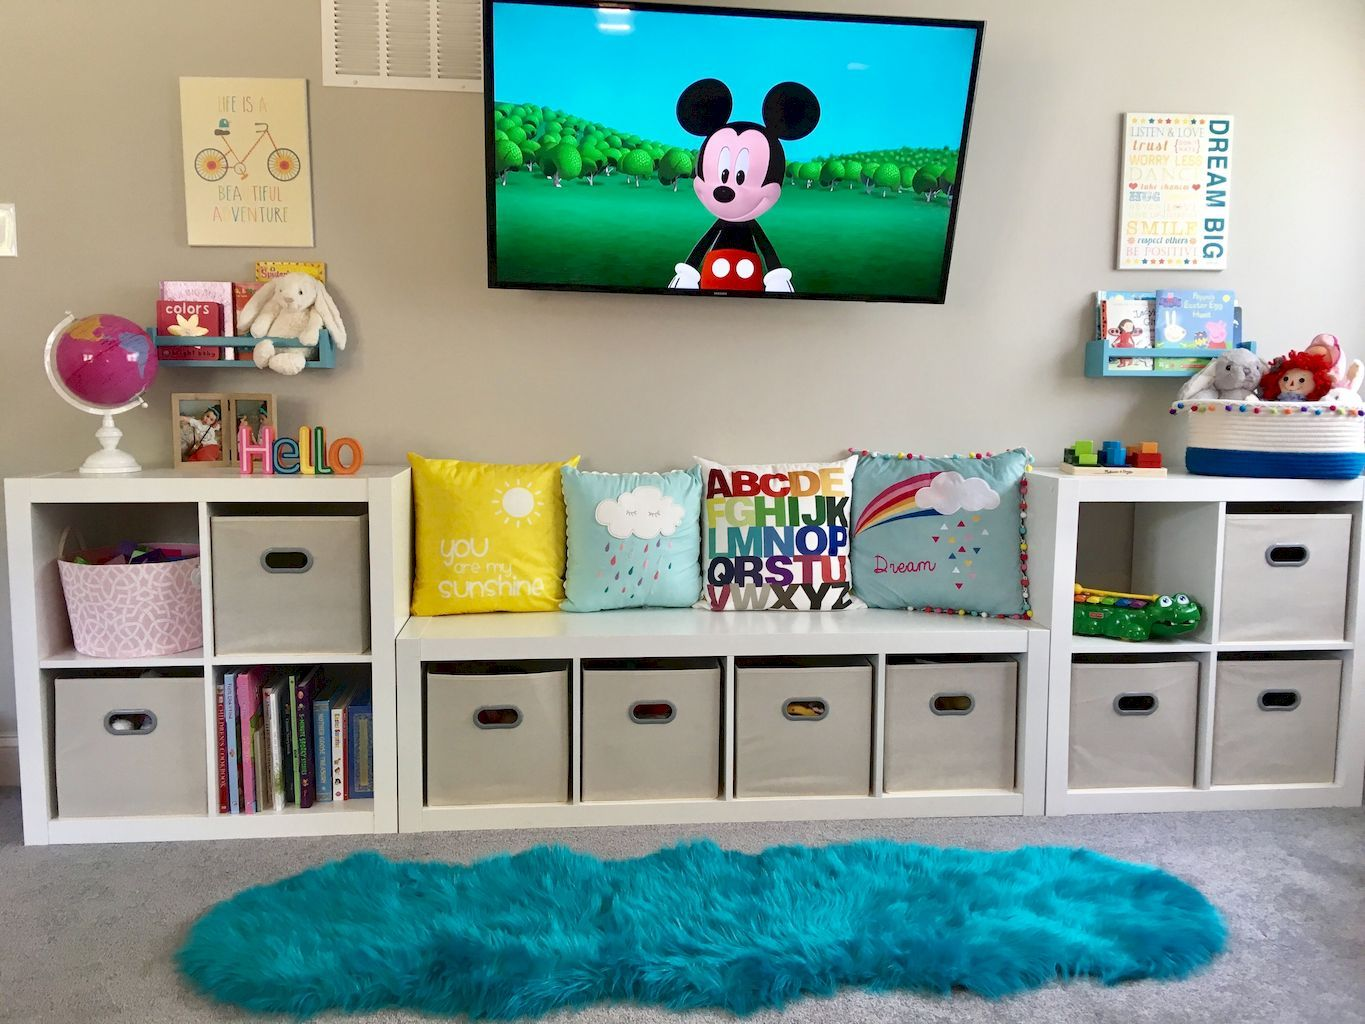 55 Clever Kids Bedroom Organization and Tips Ideas – Insidexterior